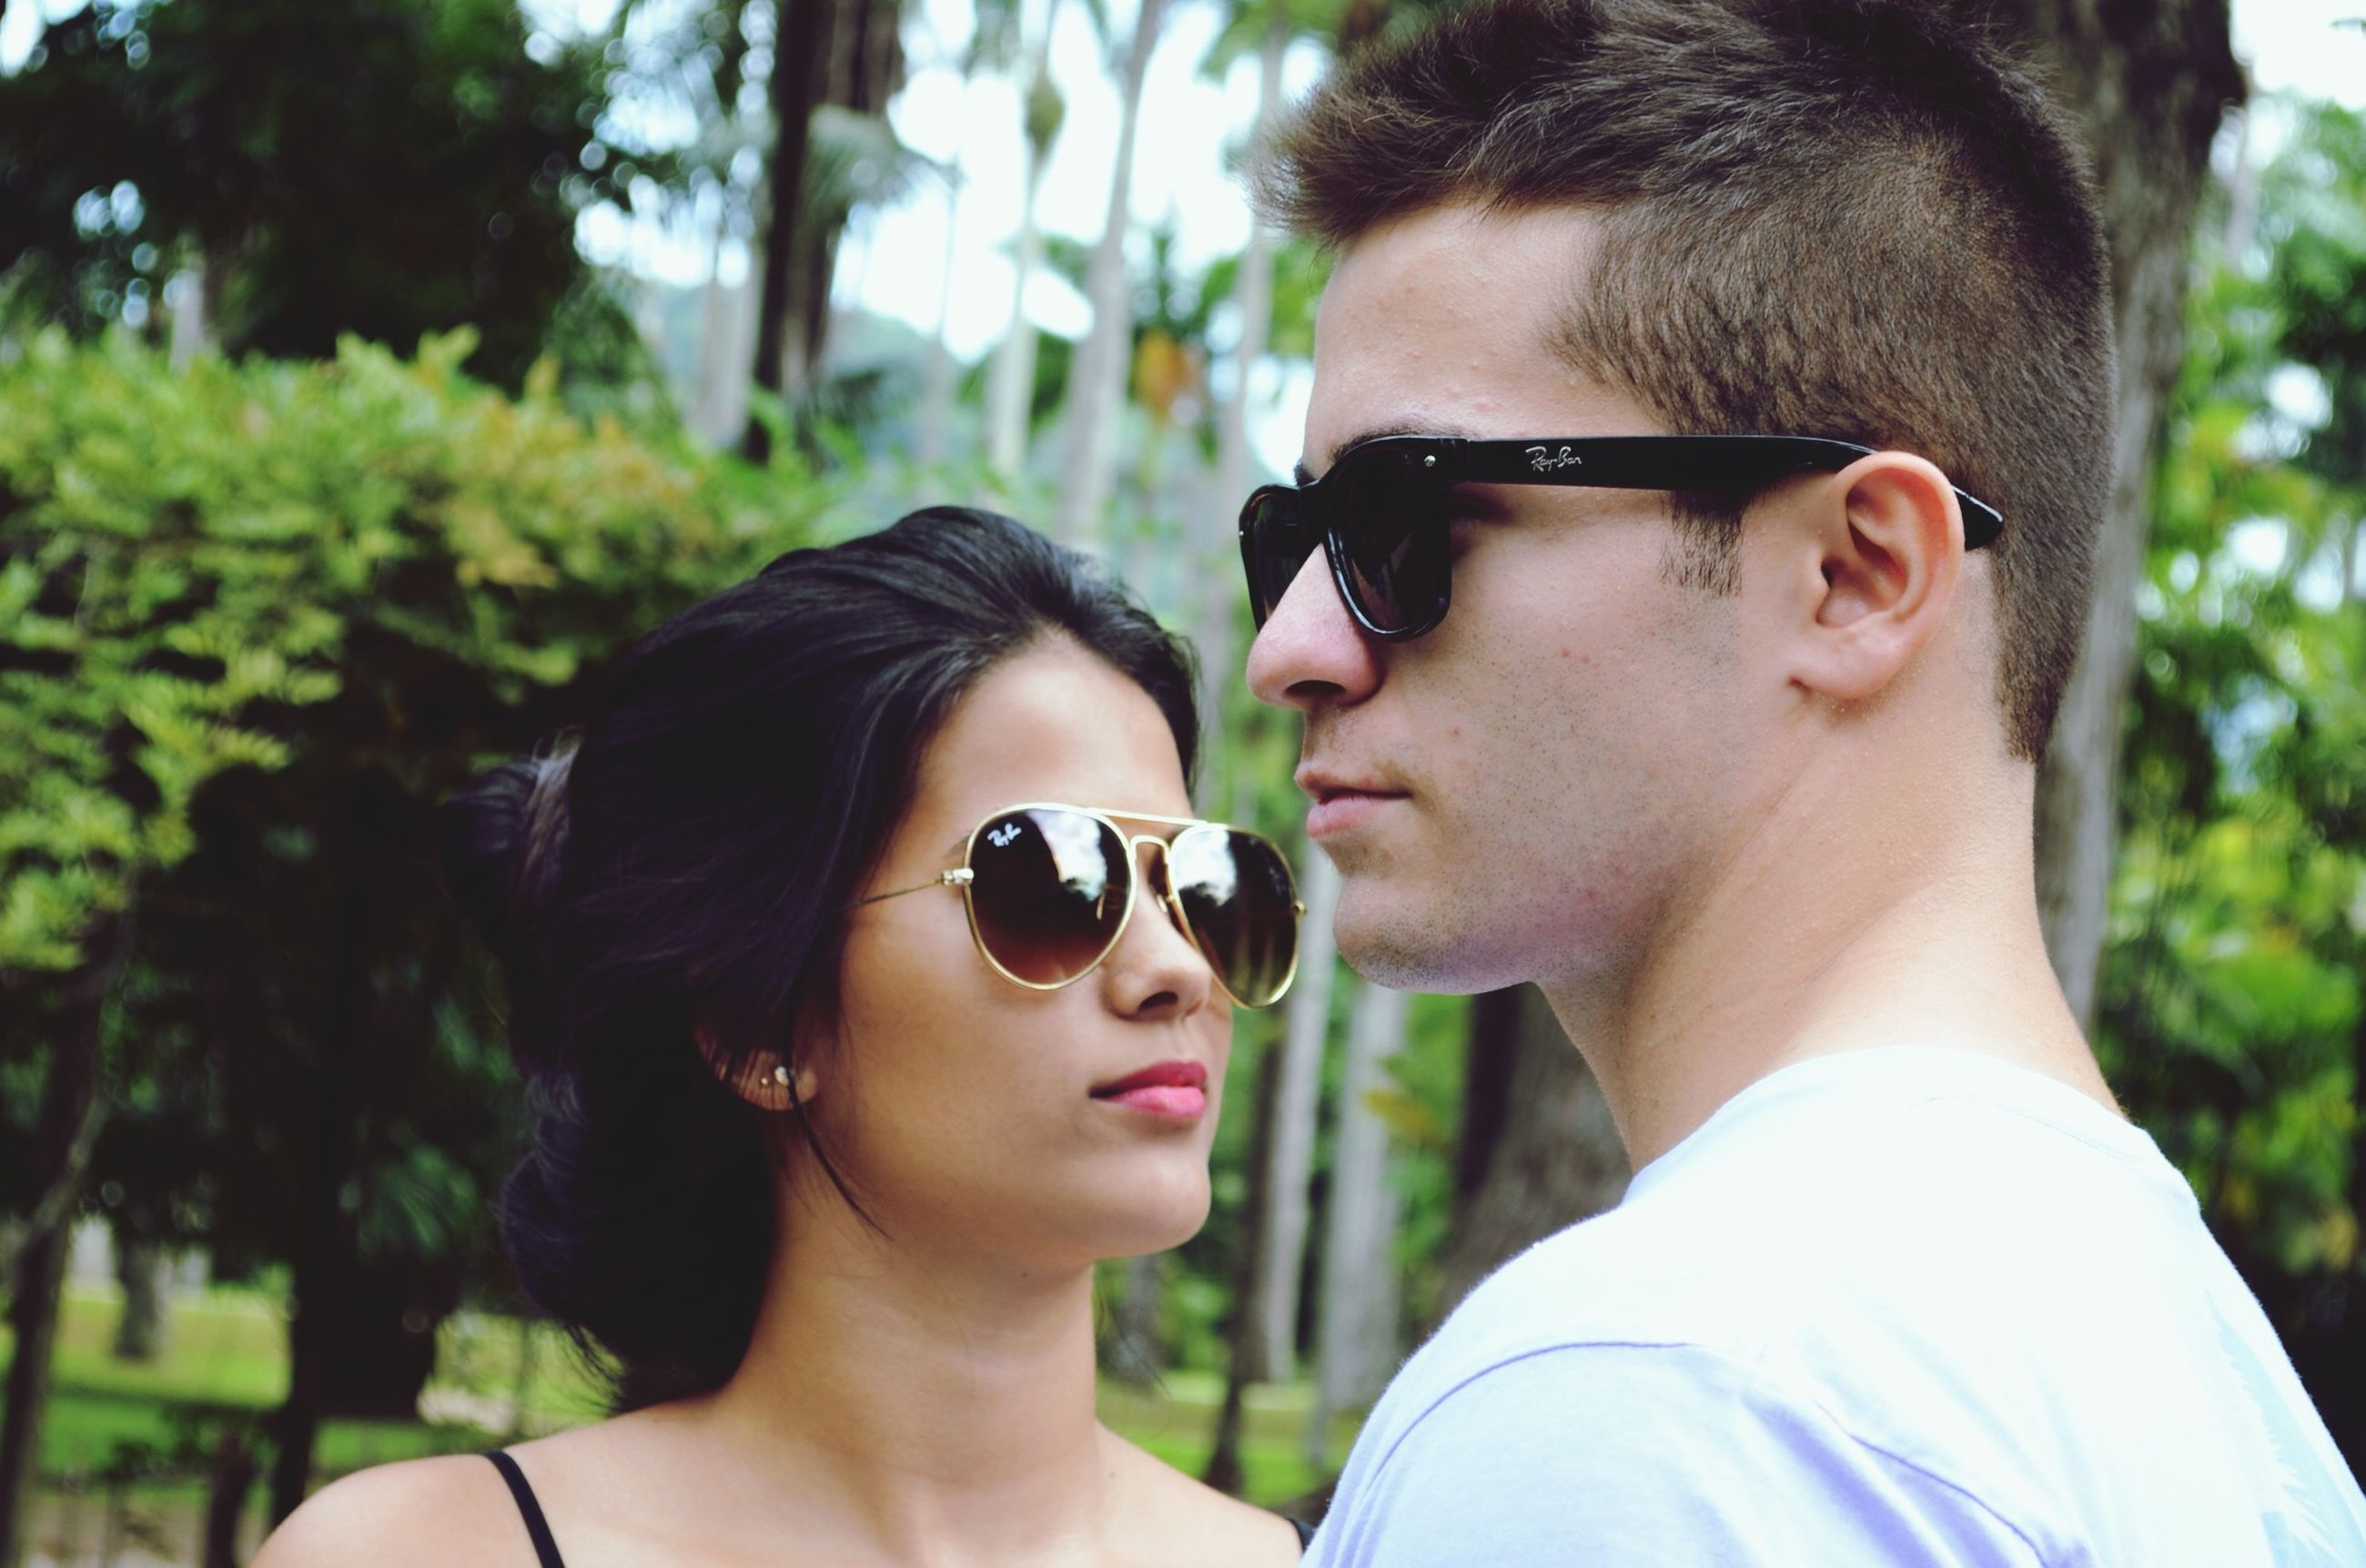 young adult, lifestyles, person, focus on foreground, leisure activity, headshot, young women, sunglasses, looking at camera, portrait, head and shoulders, close-up, smiling, front view, holding, tree